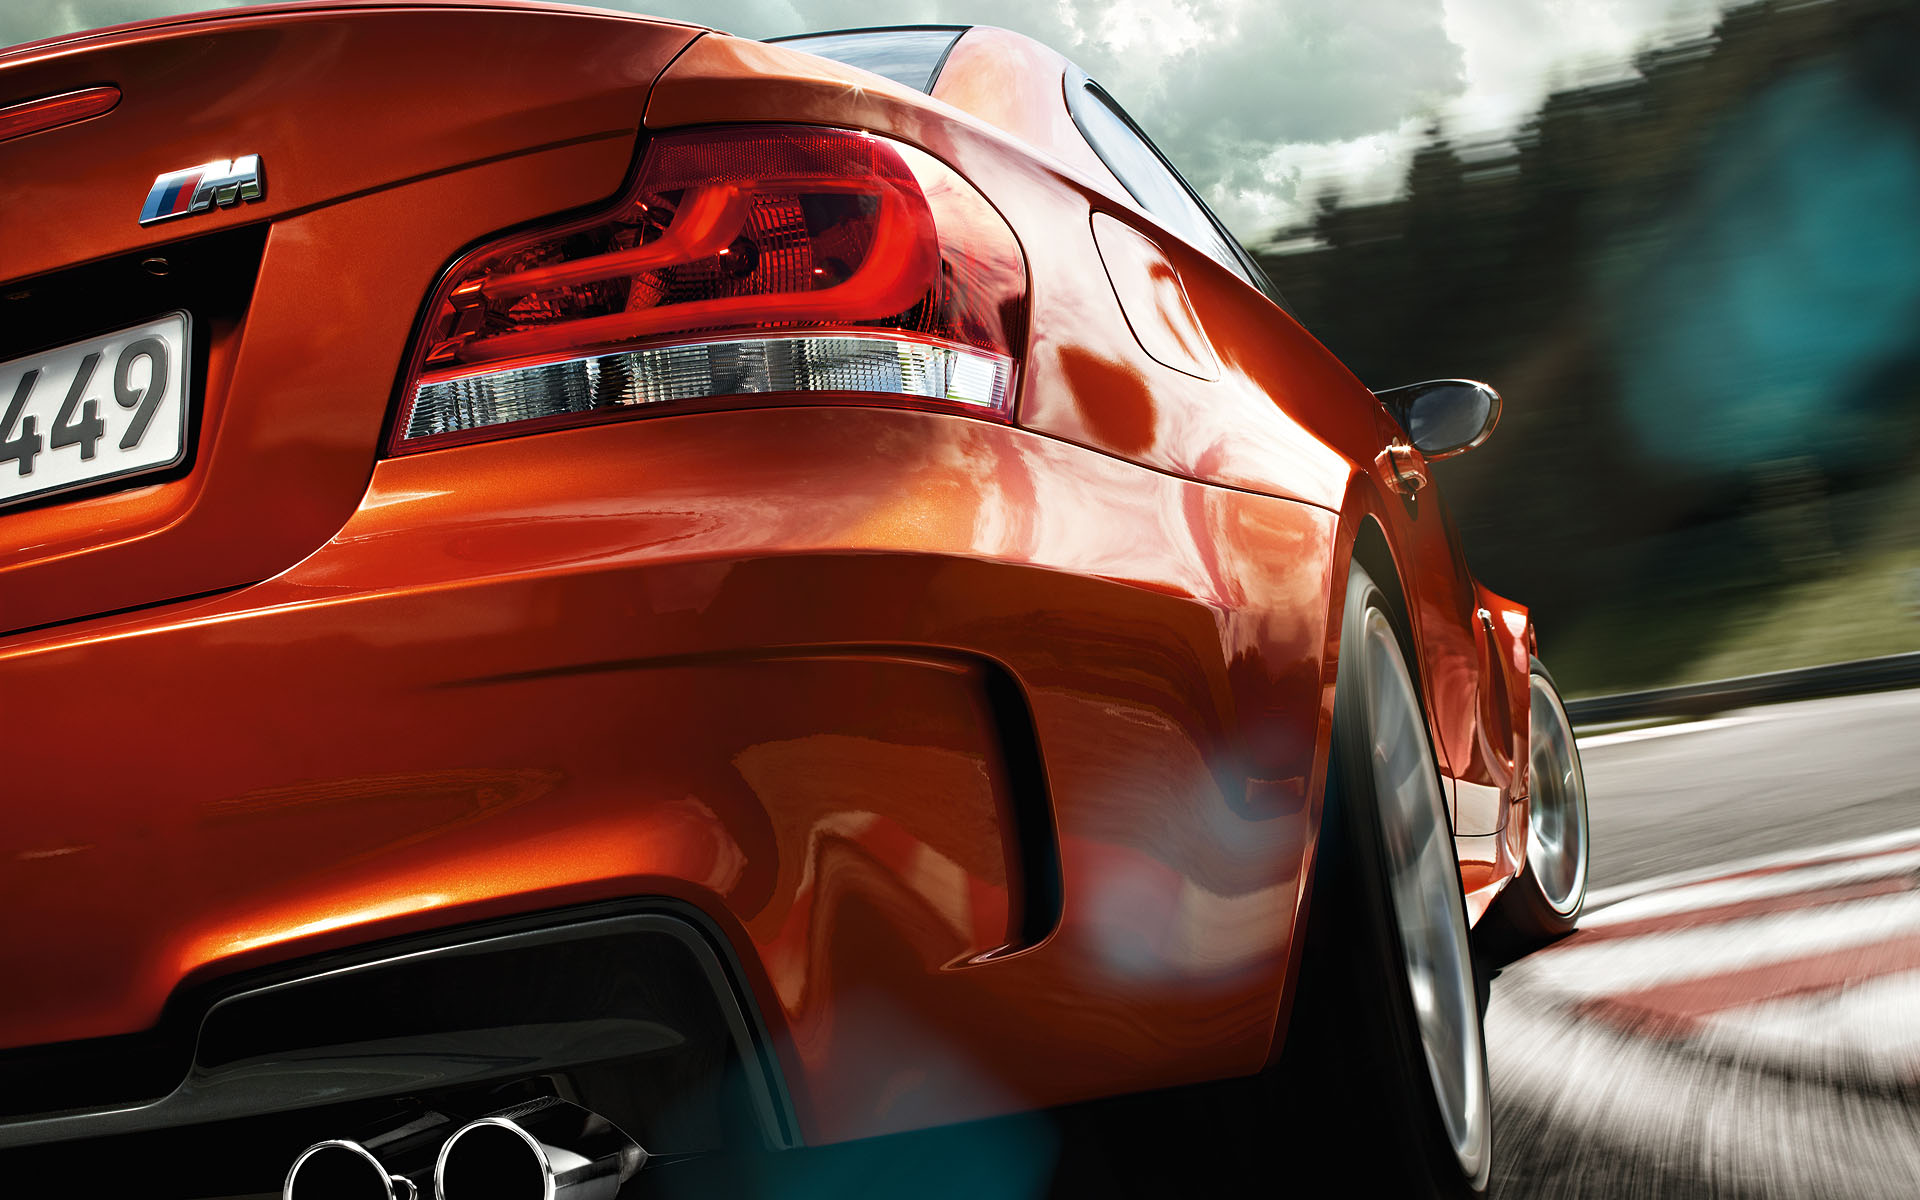 BMW Performance Driving School >> BMW 1 M COUPE : Images and Video